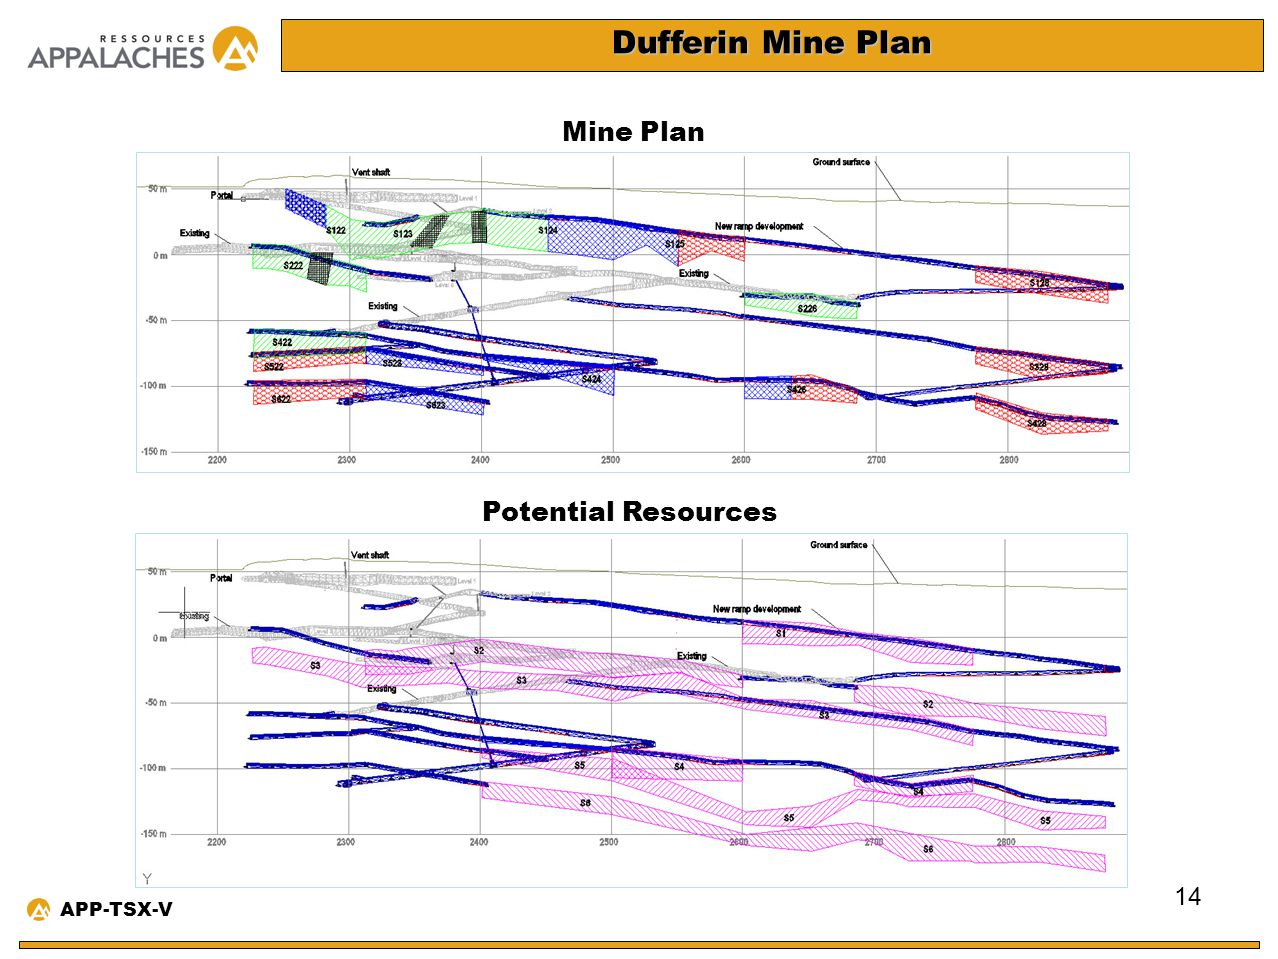 Dufferin Mine Plan Mine Plan Potential Resources APP-TSX-V